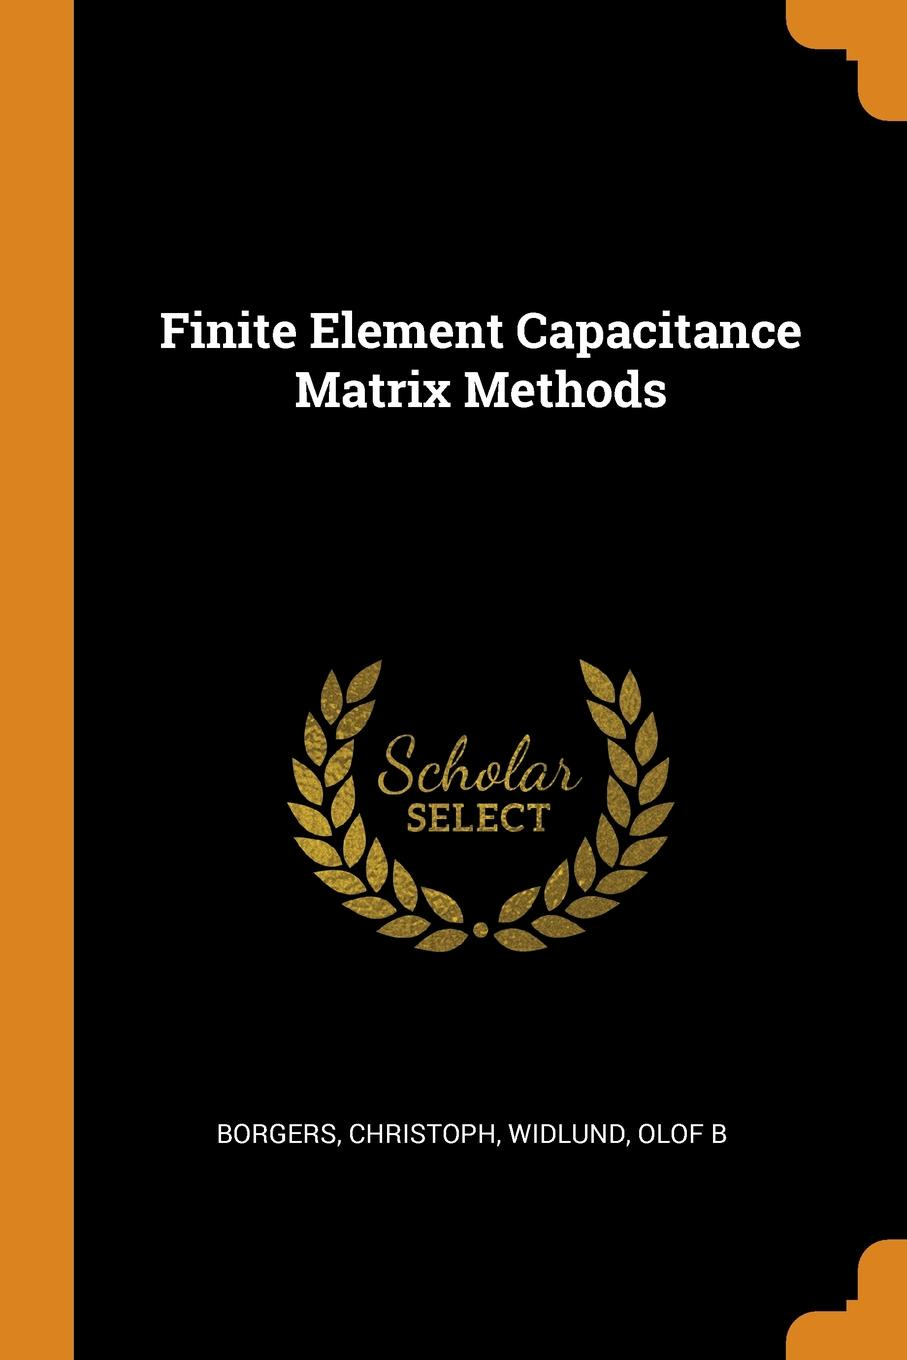 Christoph Borgers, Olof B Widlund Finite Element Capacitance Matrix Methods cho w s to stochastic structural dynamics application of finite element methods